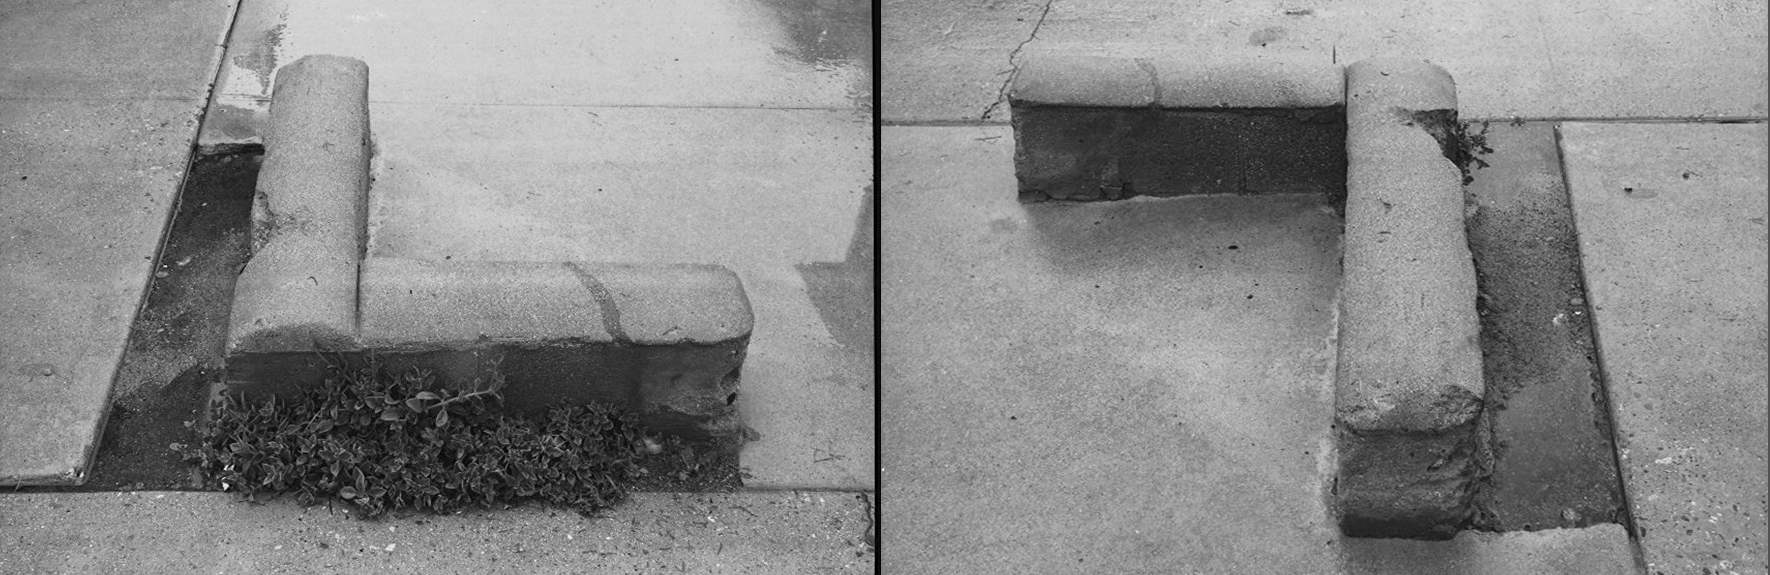 2 cement shapes